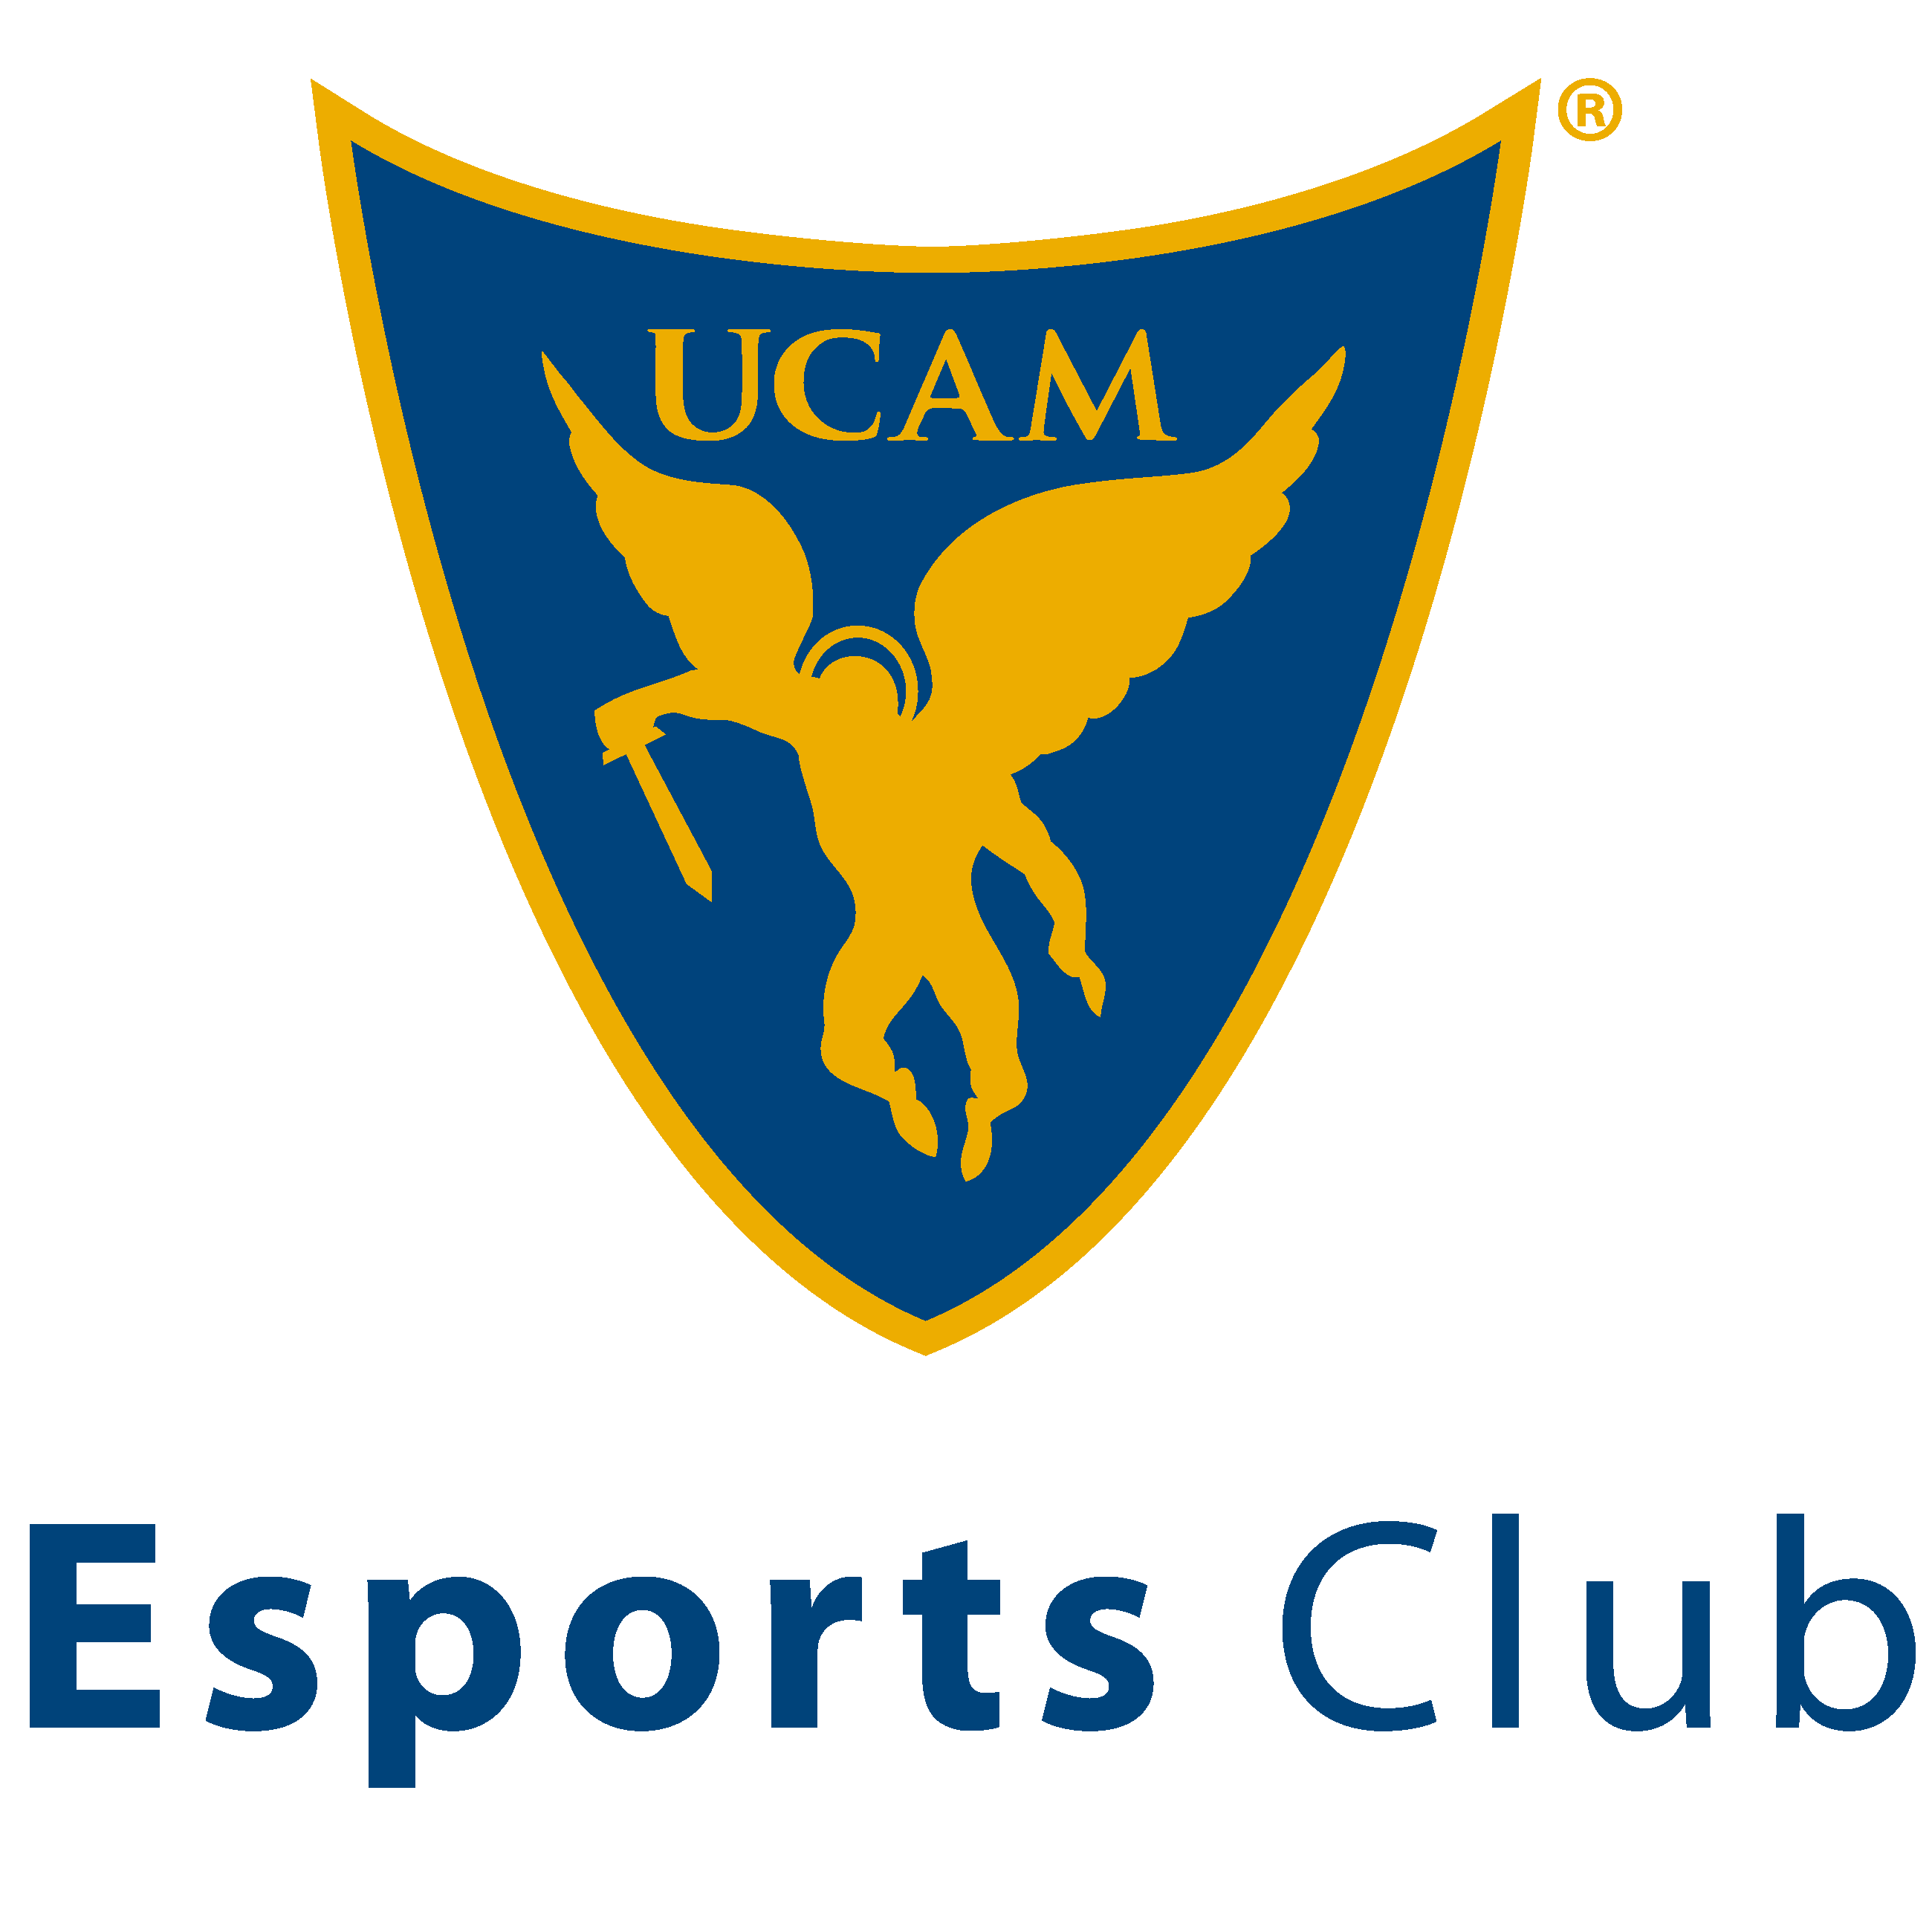 UCAM Esports Club League of Legends Team